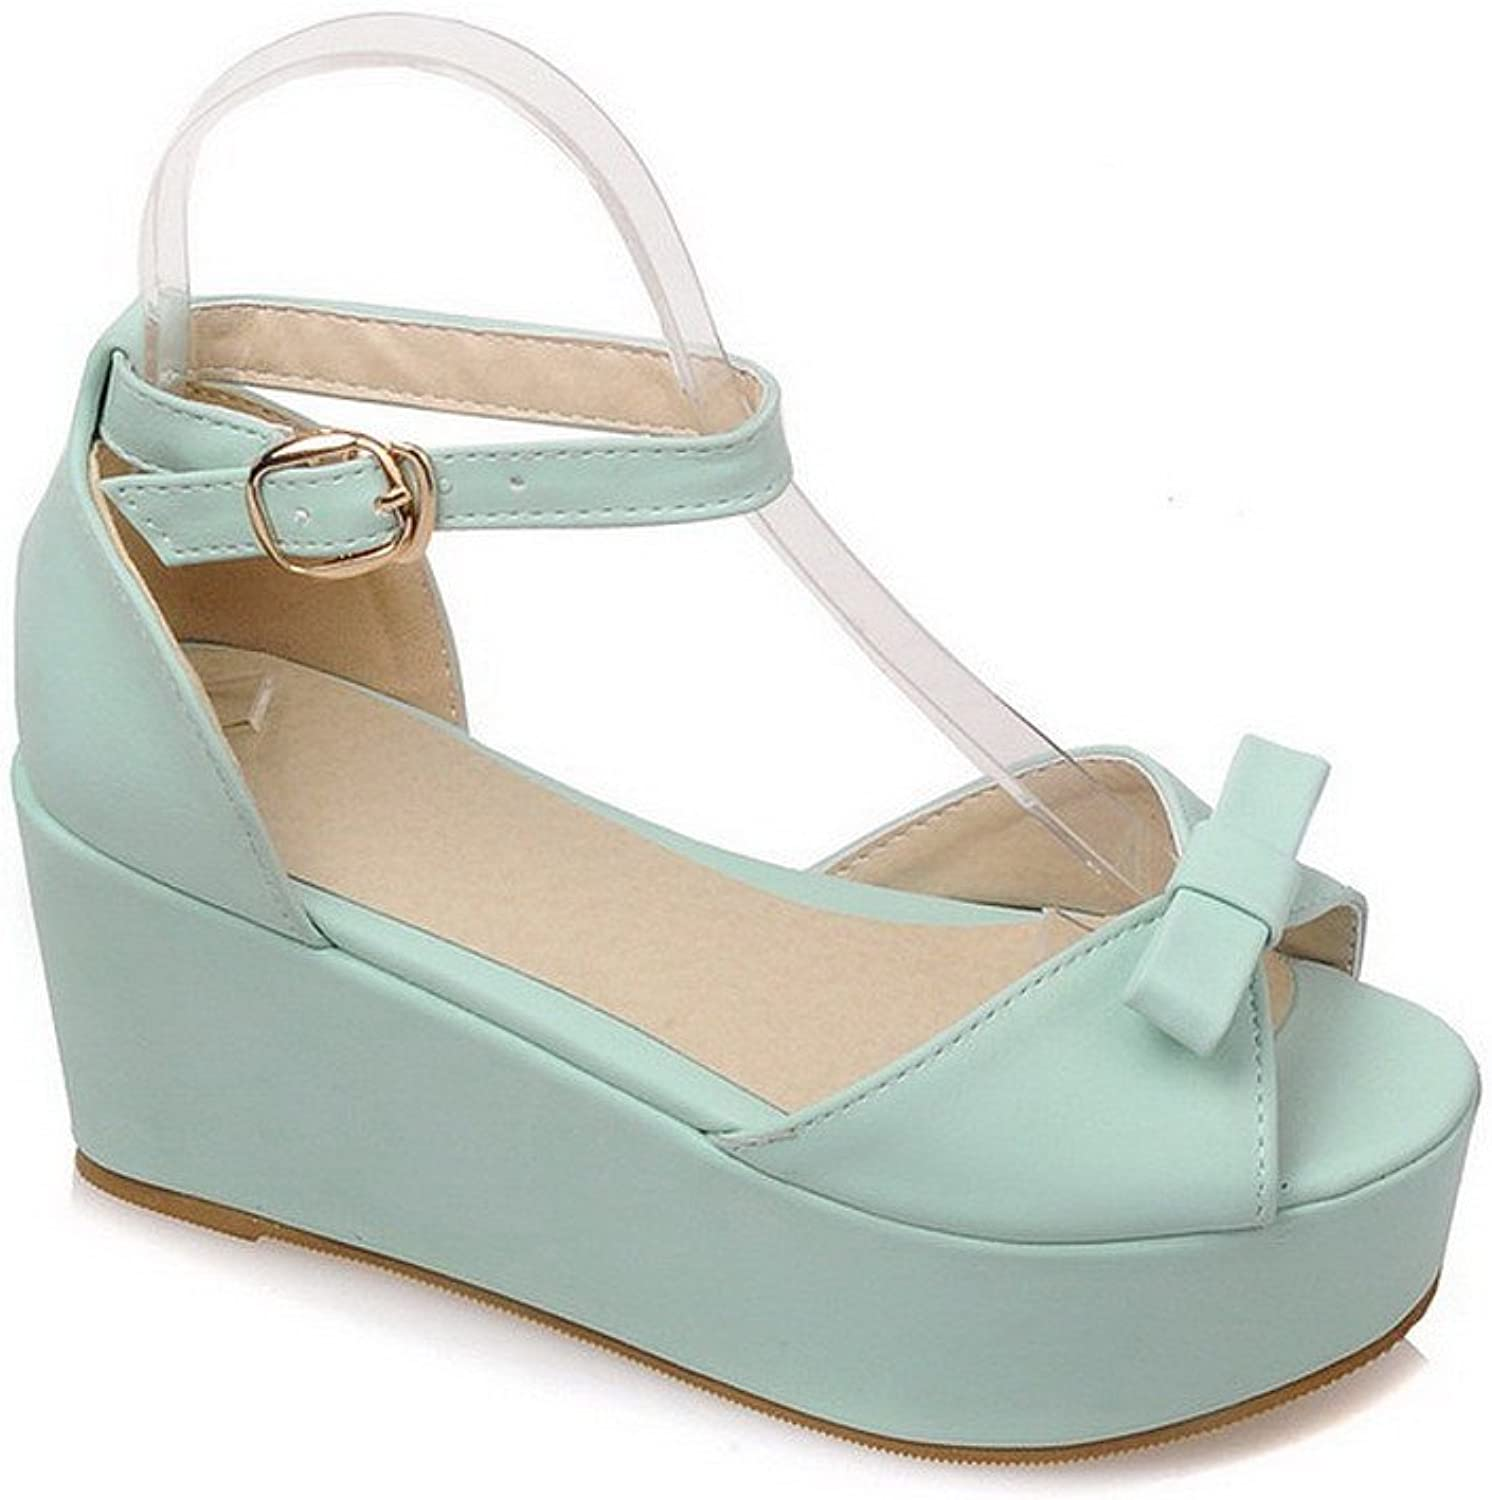 WeenFashion Women's Open Toe High-Heels Soft Material Solid Buckle Platforms & Wedges